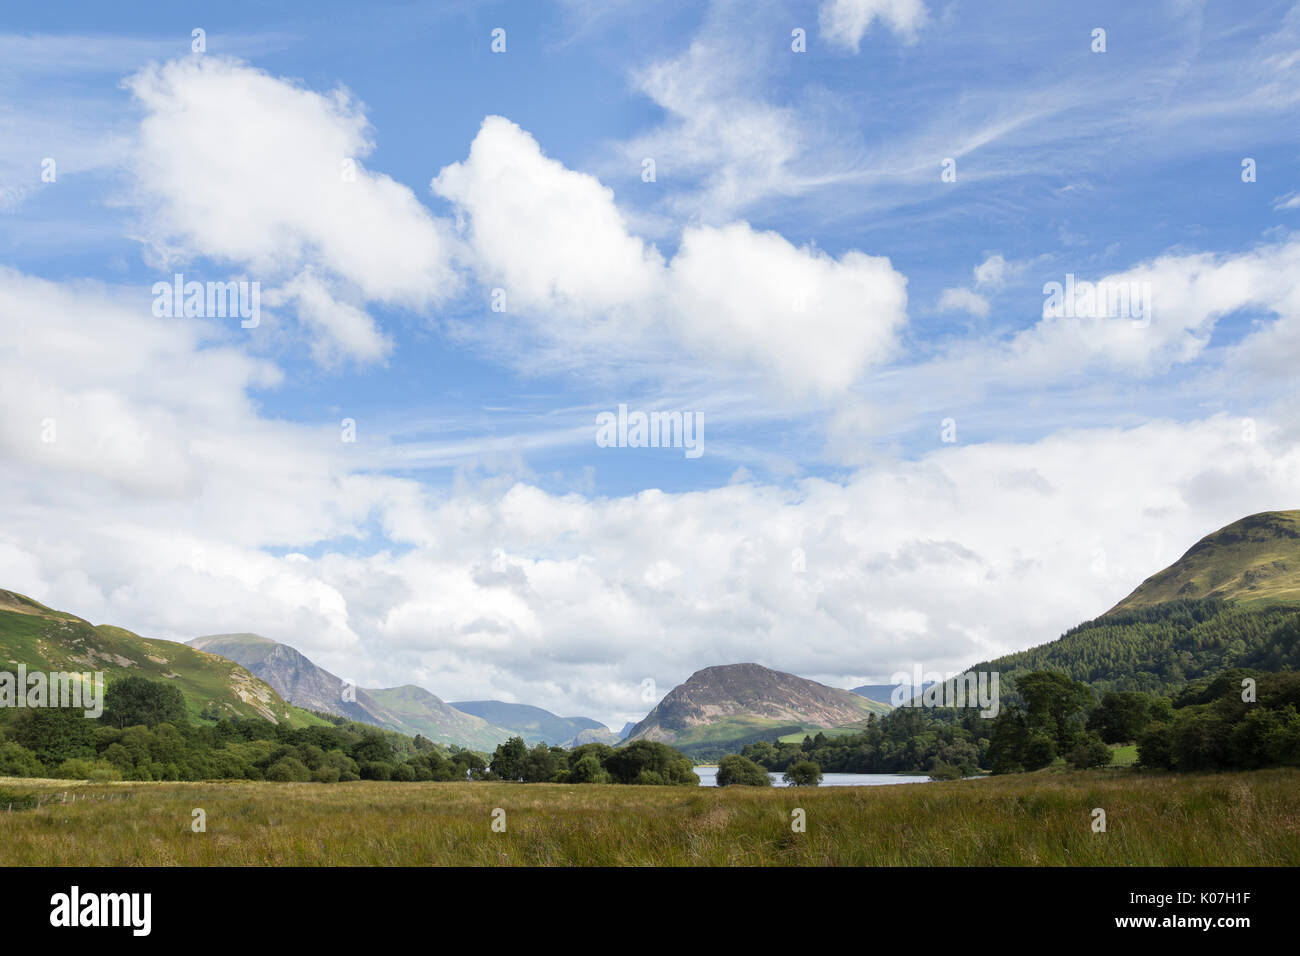 The view from the north-western end of Loweswater in the Lake District, Cumbria, England. Grasmoor, Mellbreak and Stock Photo